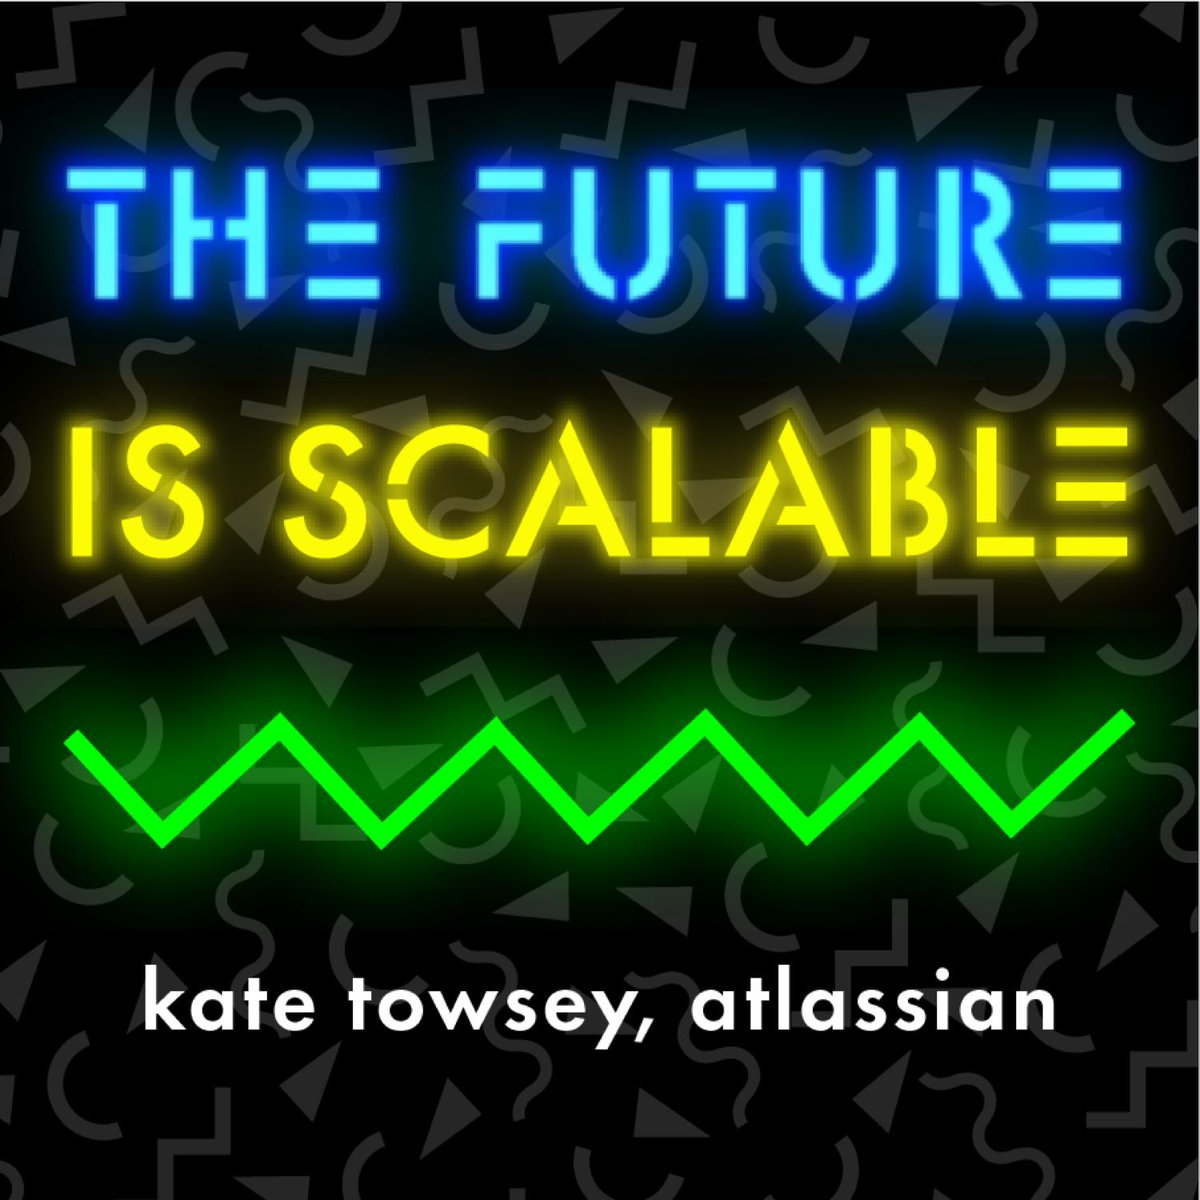 New episode out now ✨ Listen in to hear @katetowsey of @atlassiandesign talk about her love of all things ResearchOps and how you can scale your growing research team more effectively https://bit.ly/2xI4enq